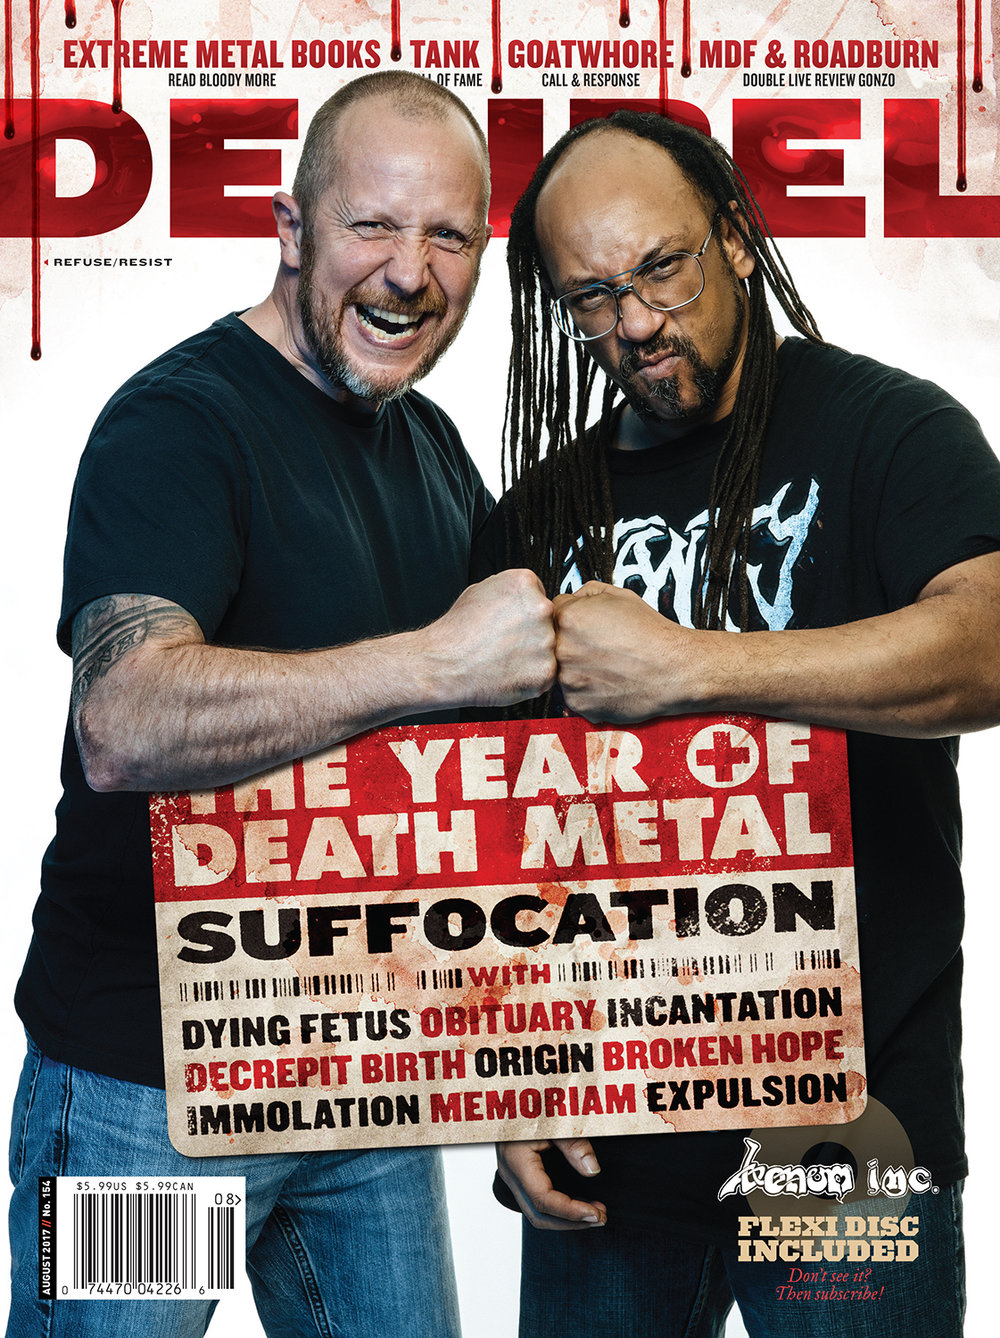 Decibel #154 - August 2017 - The Year of Death Metal